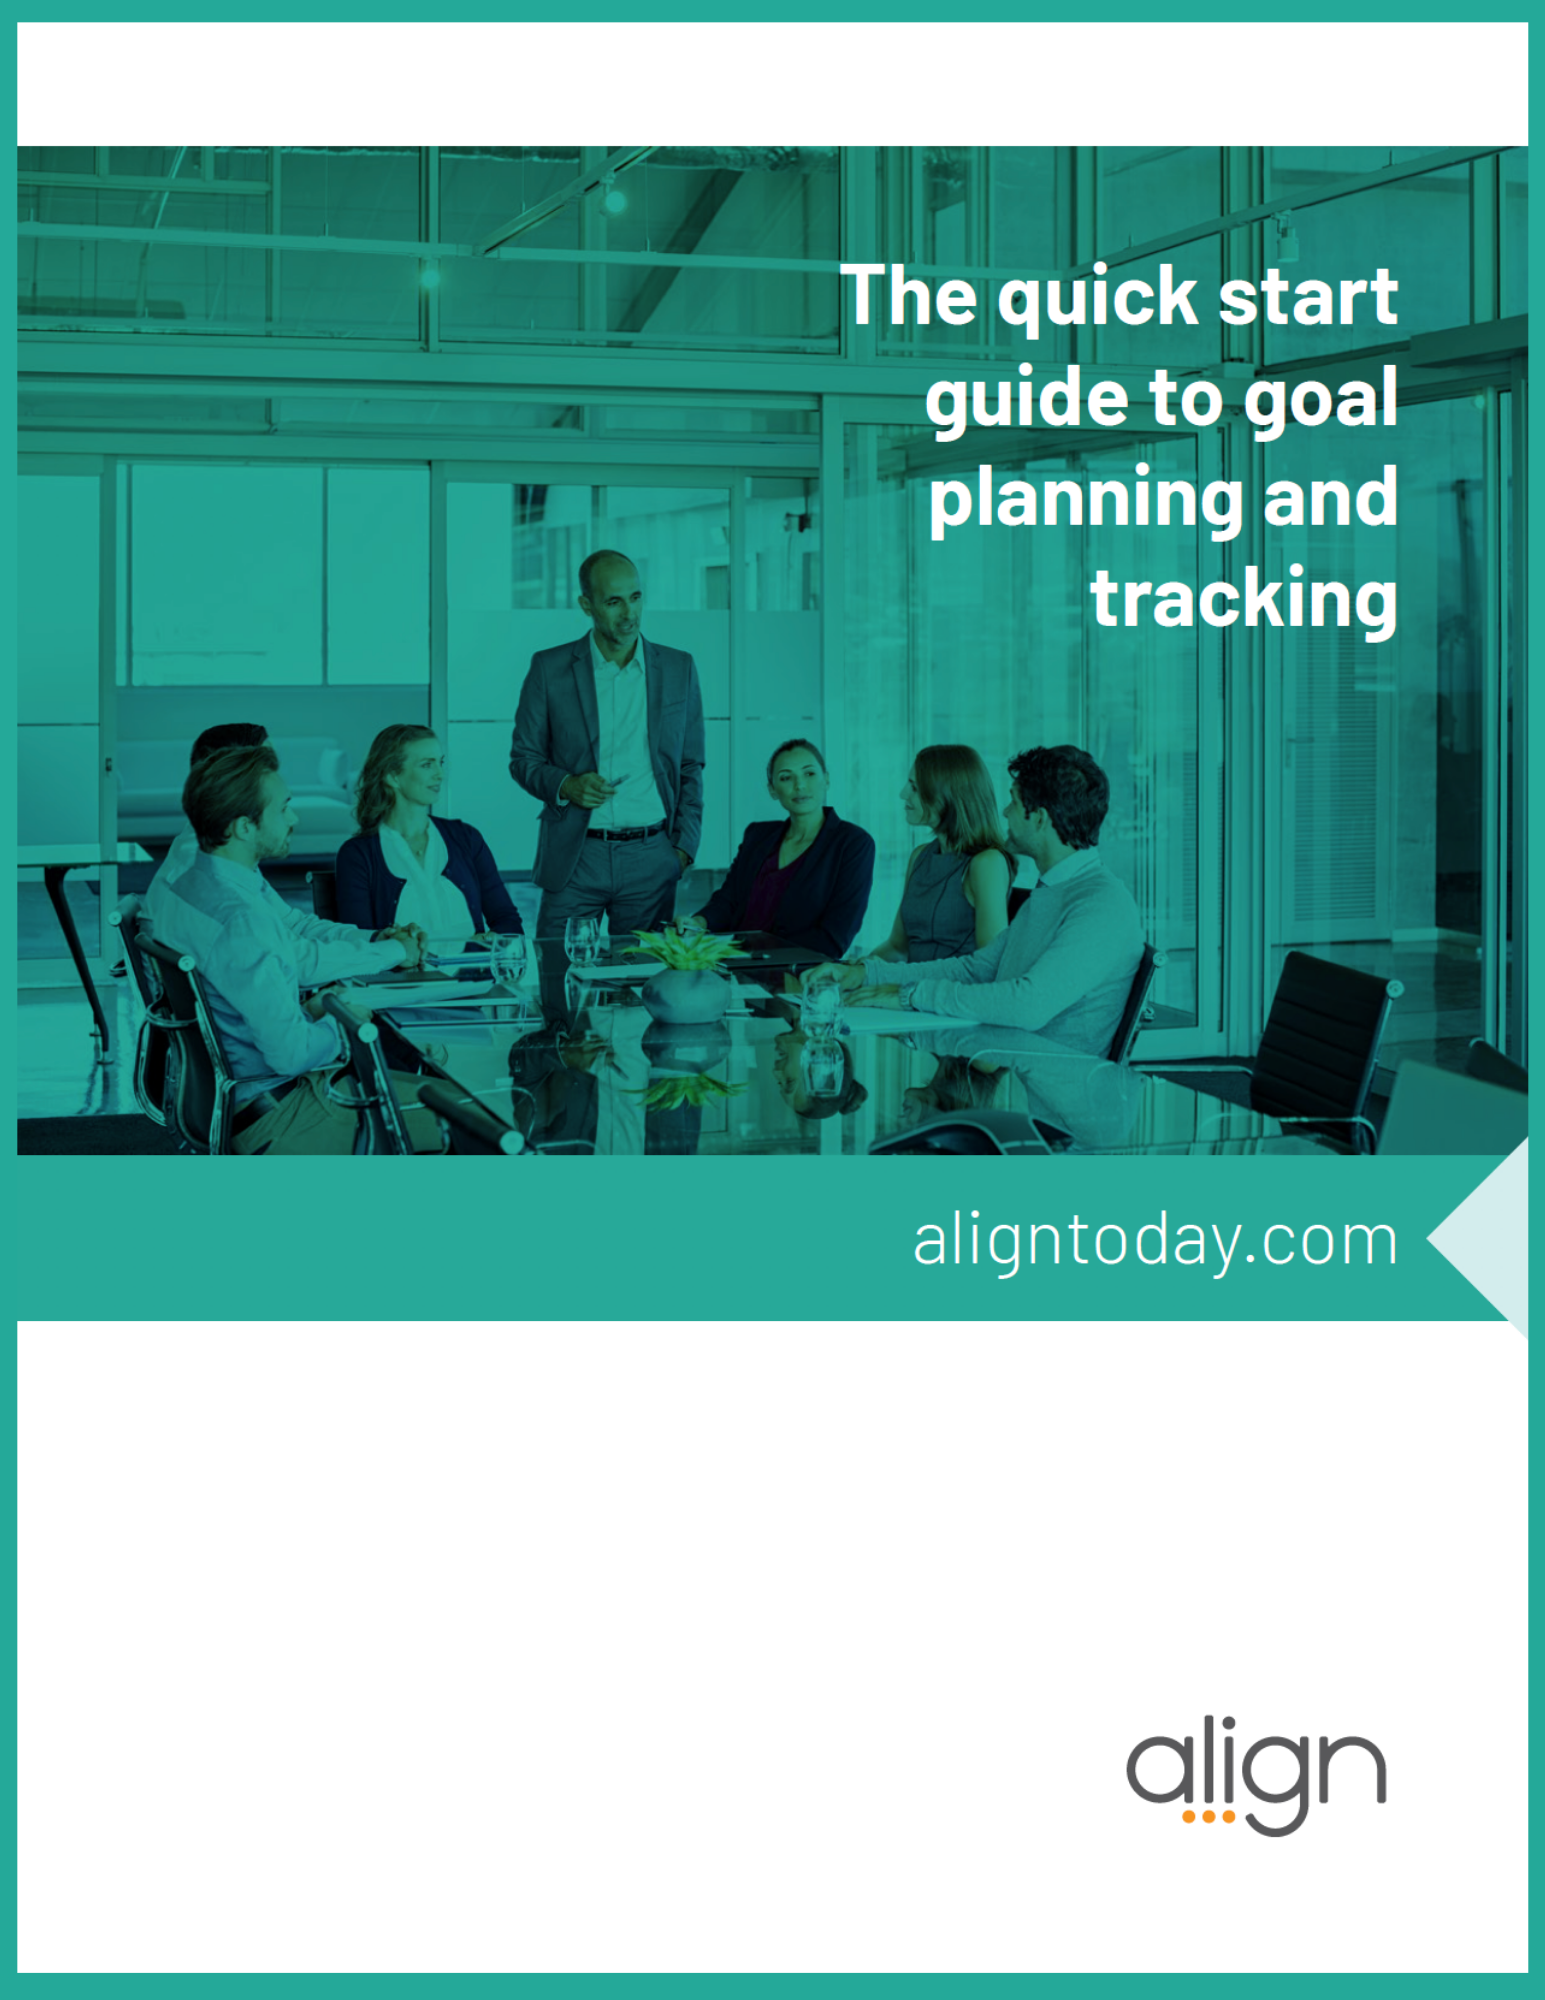 https://aligntoday.com/wp-content/uploads/2020/02/Quick-Start-Guide-to-Goal-Planning-and-Tracking.png